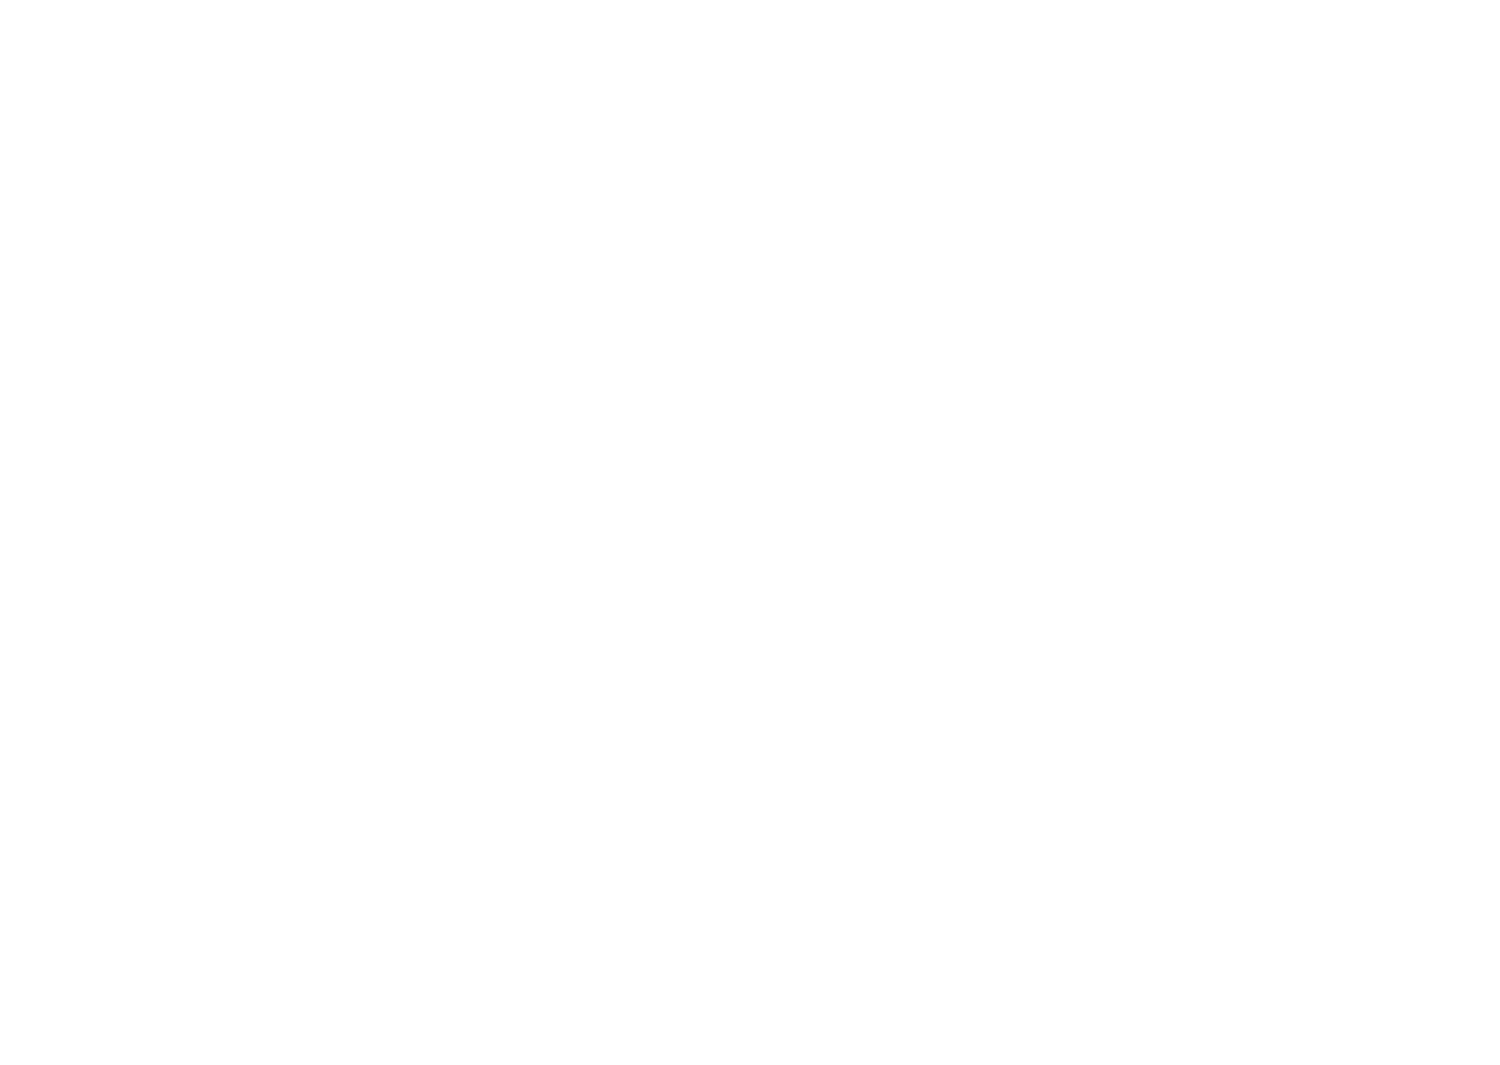 Joshua 24:15 Custom Homes